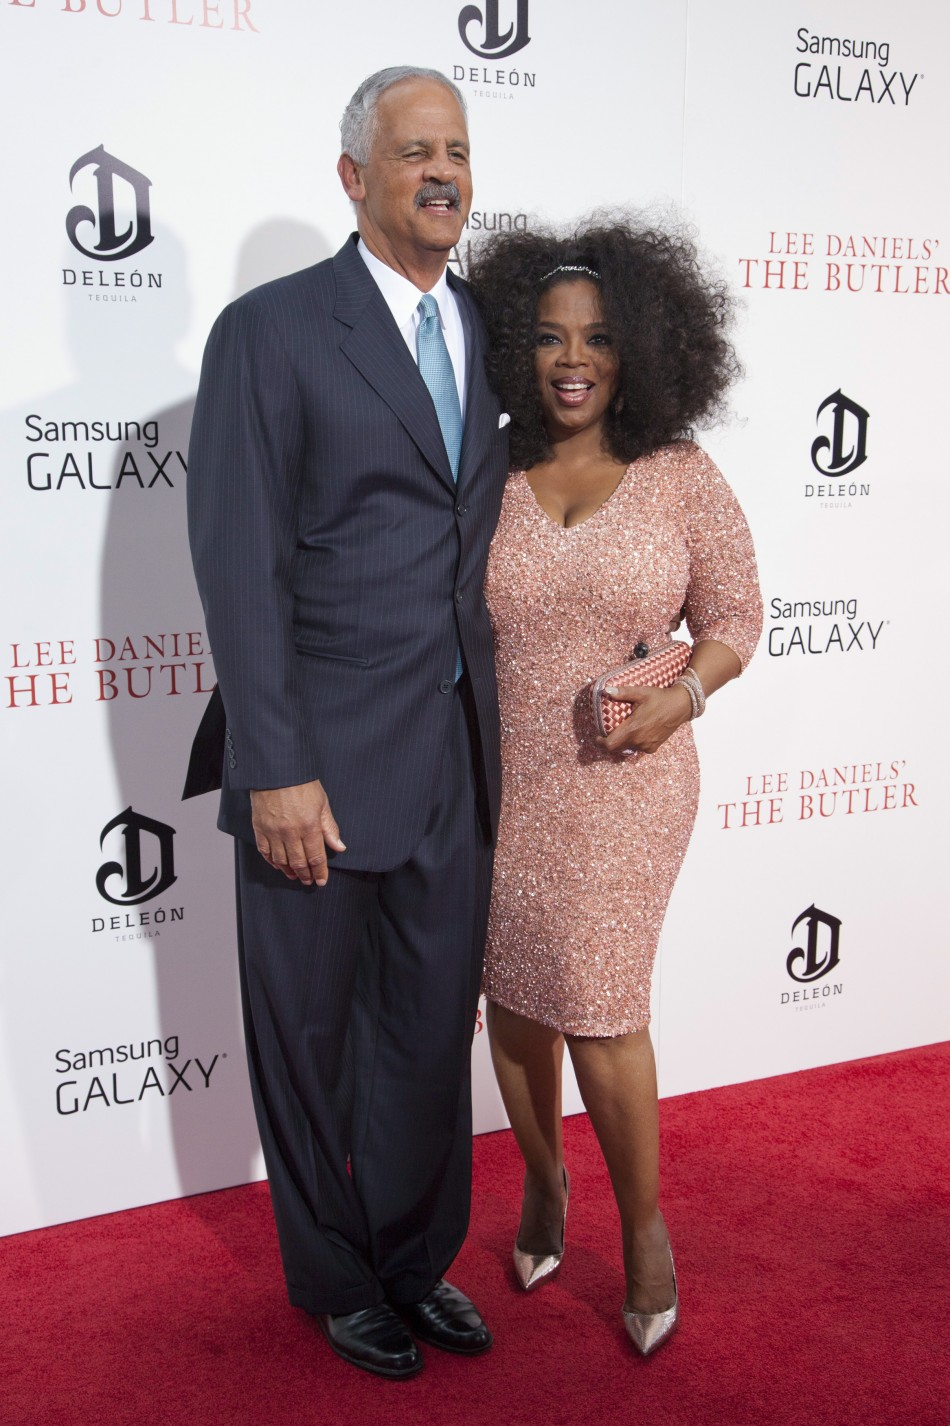 The Butler Premiere